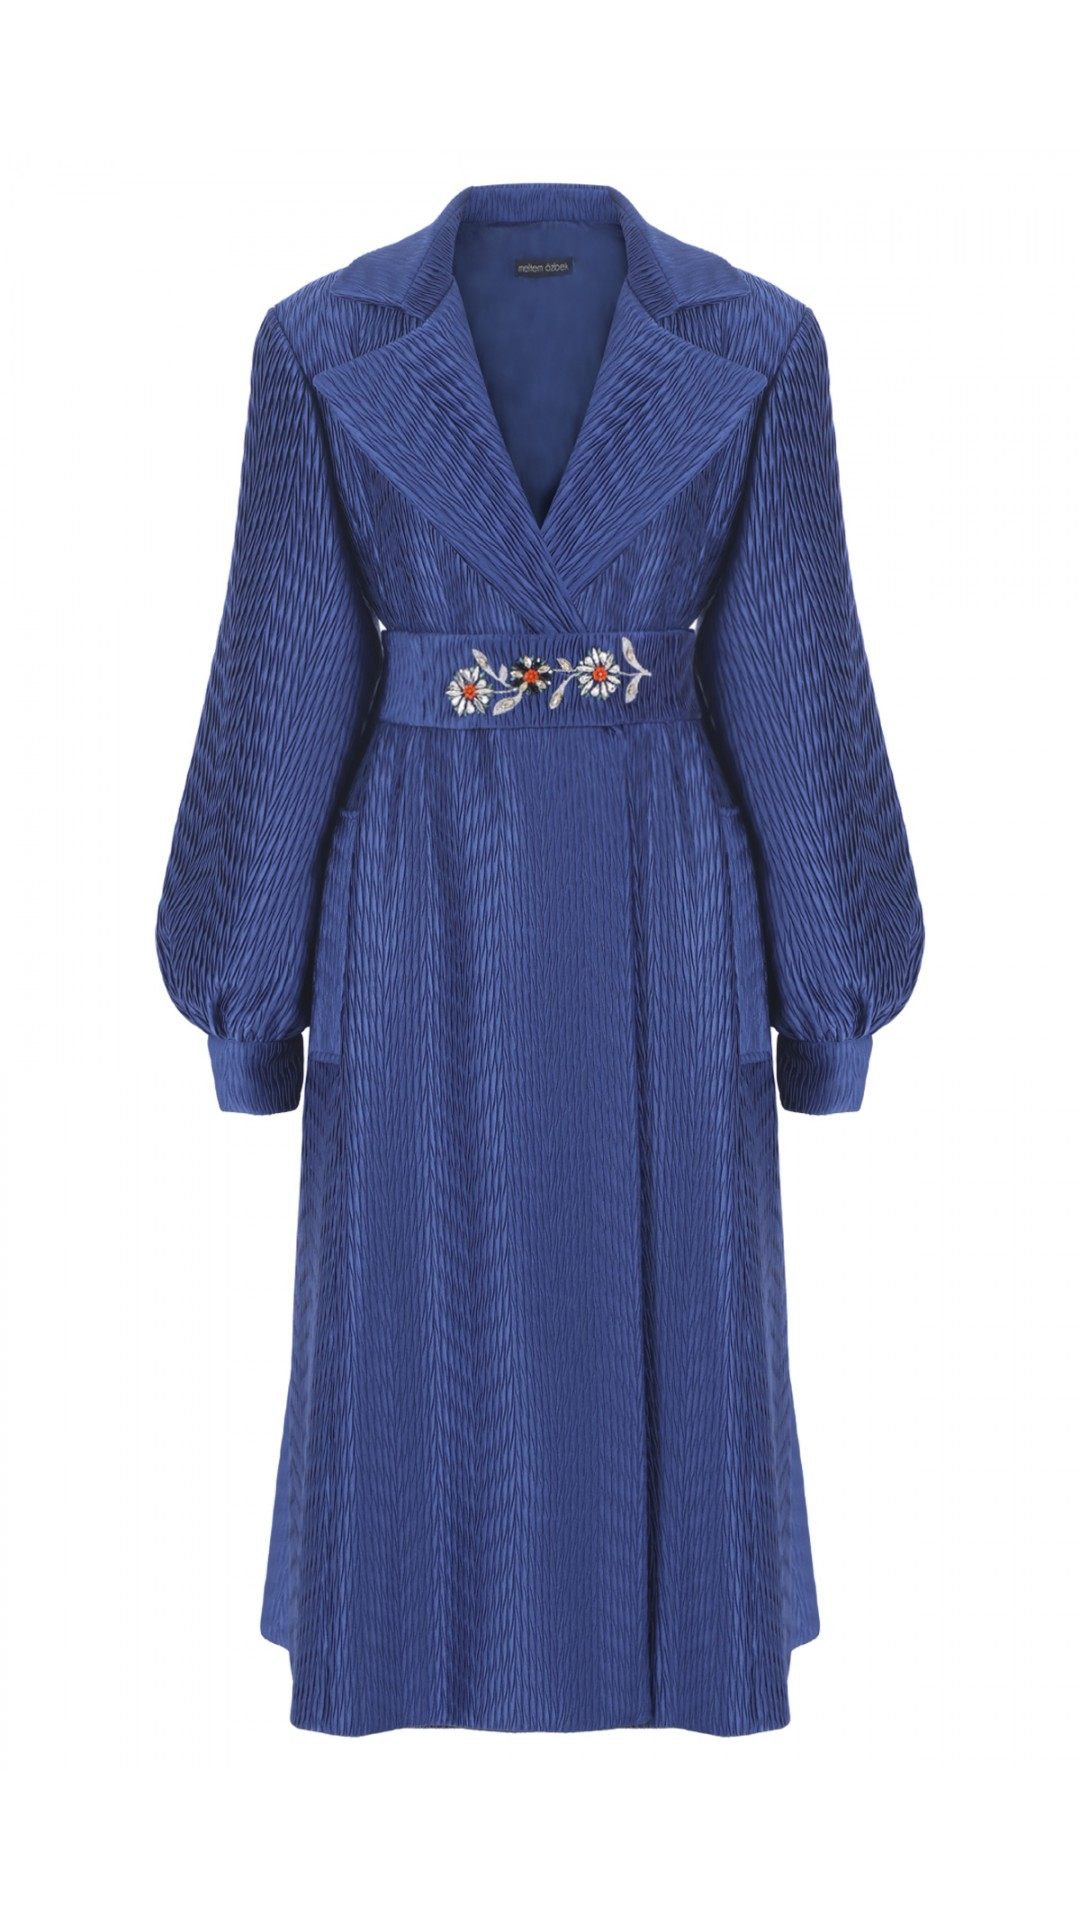 LONG PLEATED JACKET WITH EMBROIDERY